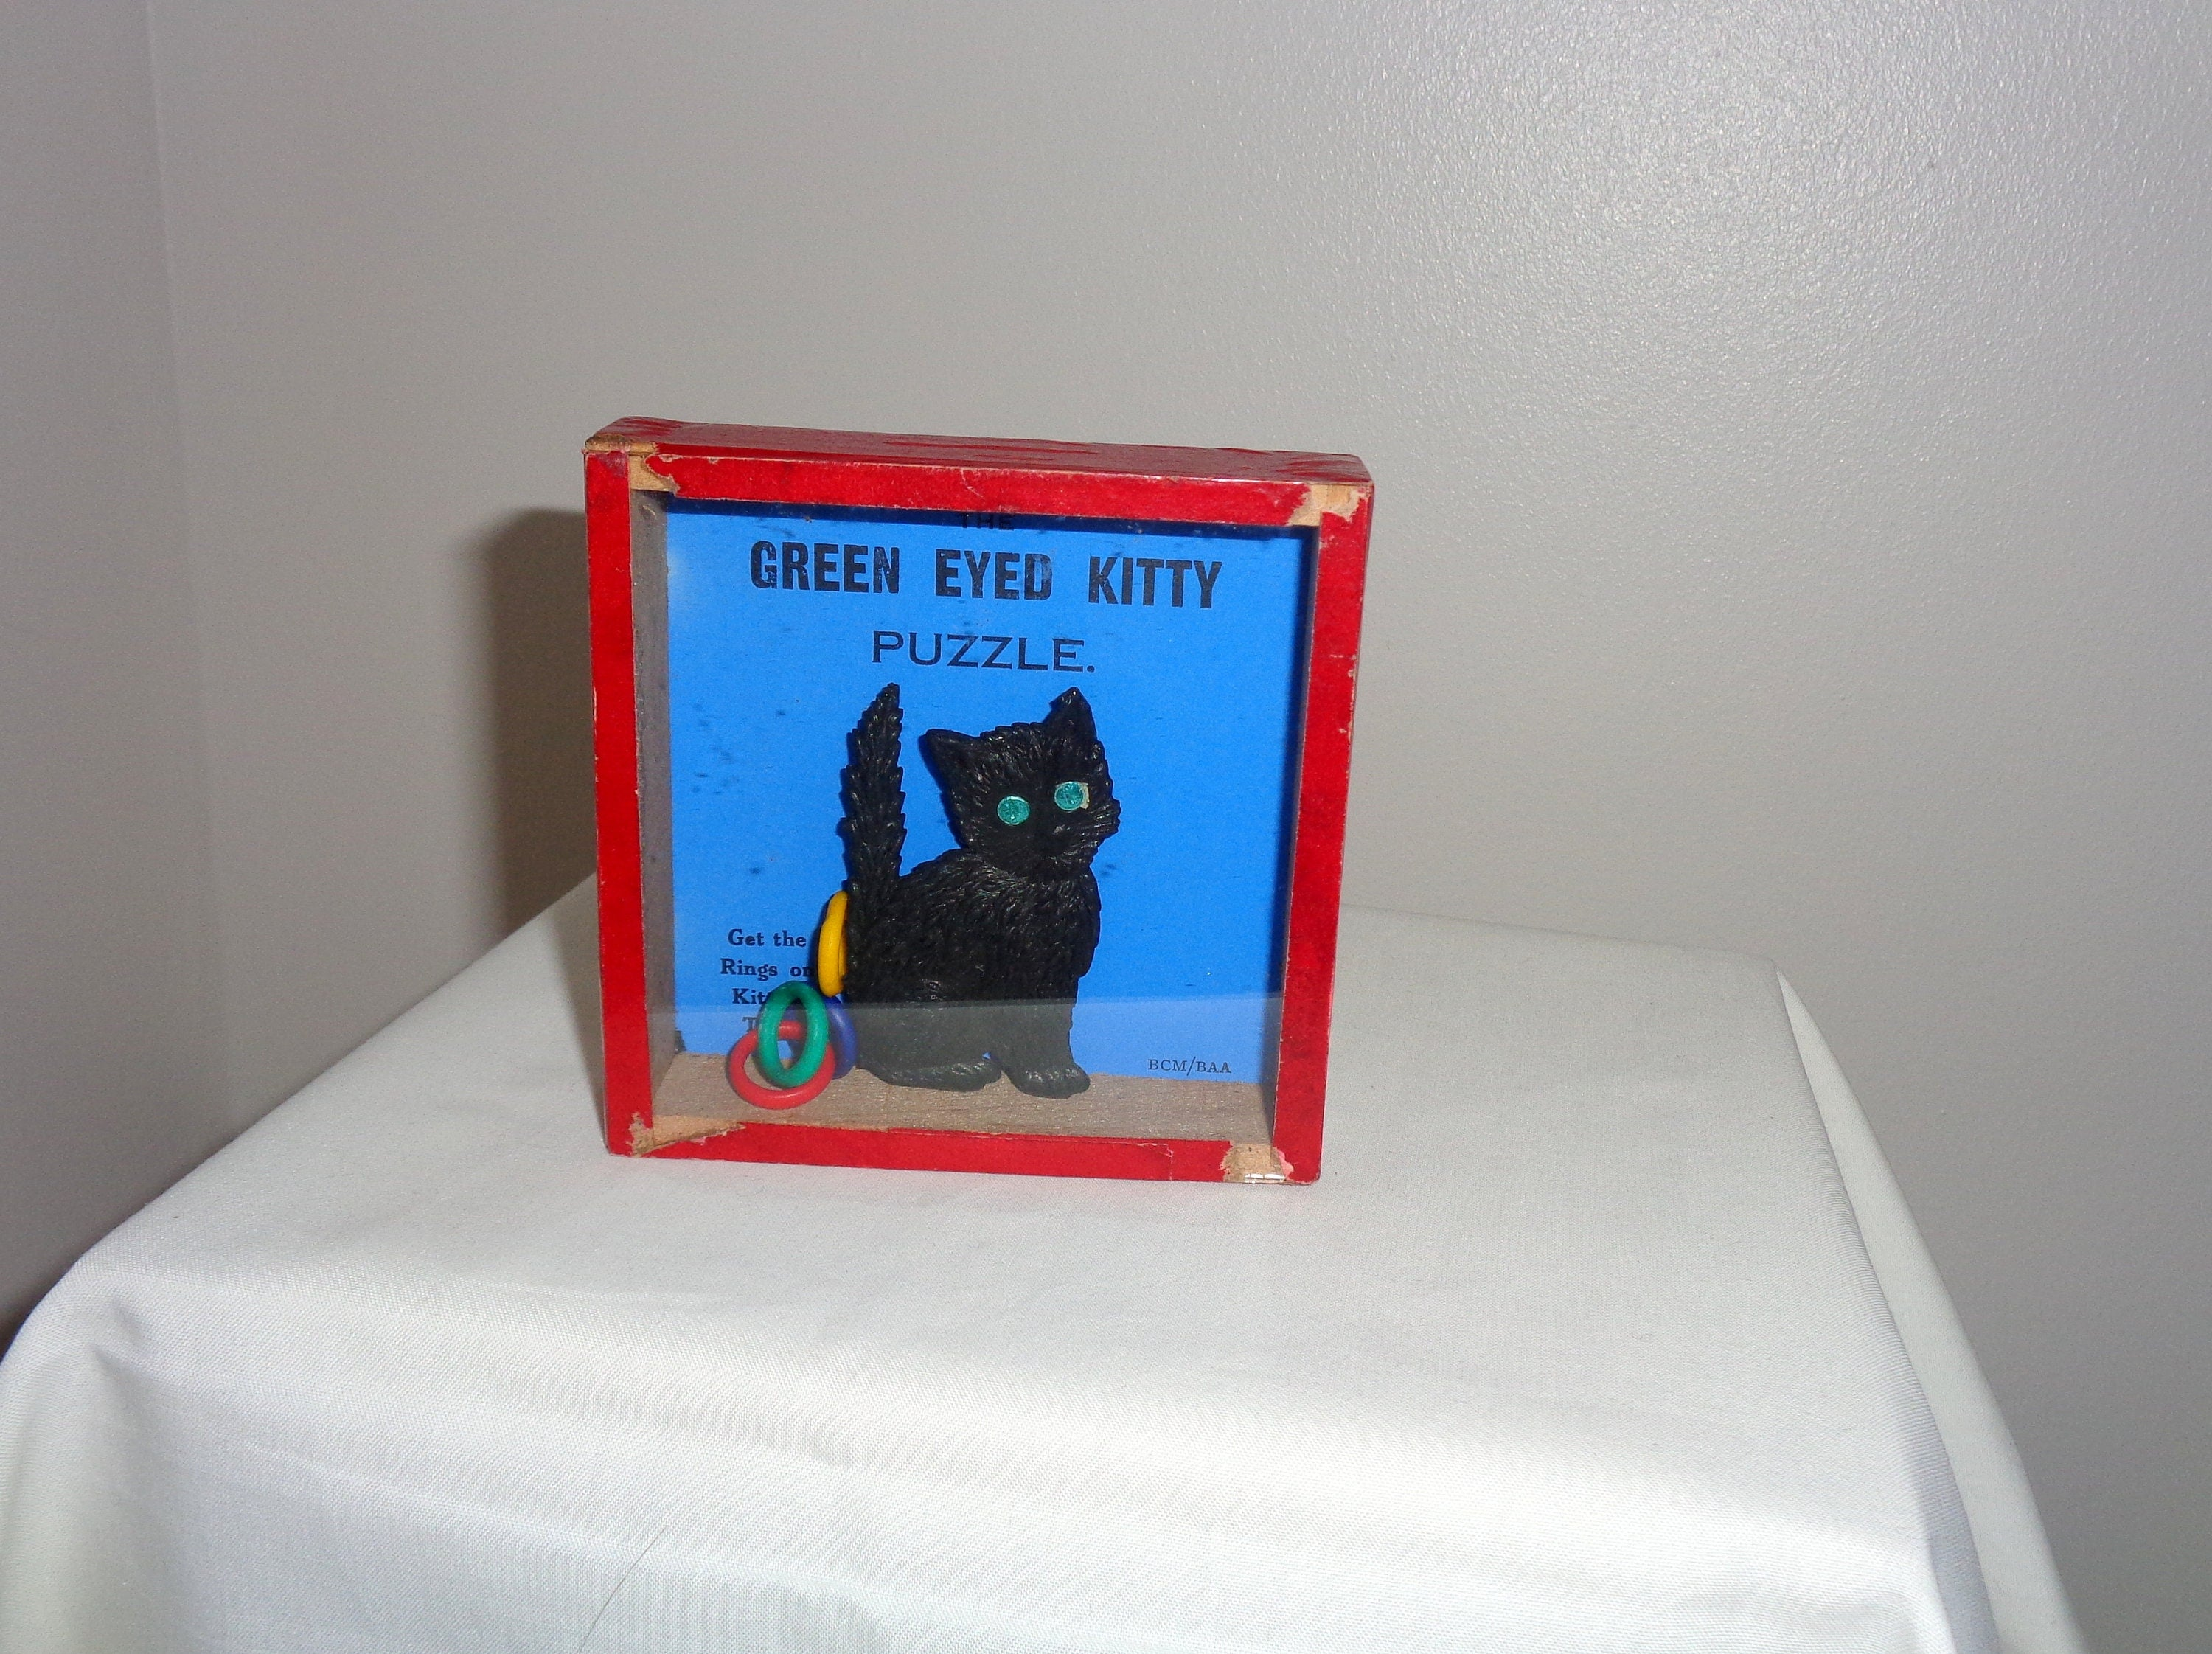 1920s Hand Held Green Eyed Kitty Table/ Patience Game/ Dexterity/ Palm Puzzle/ Childrens Game by BCM/BAA. Museum Collectible